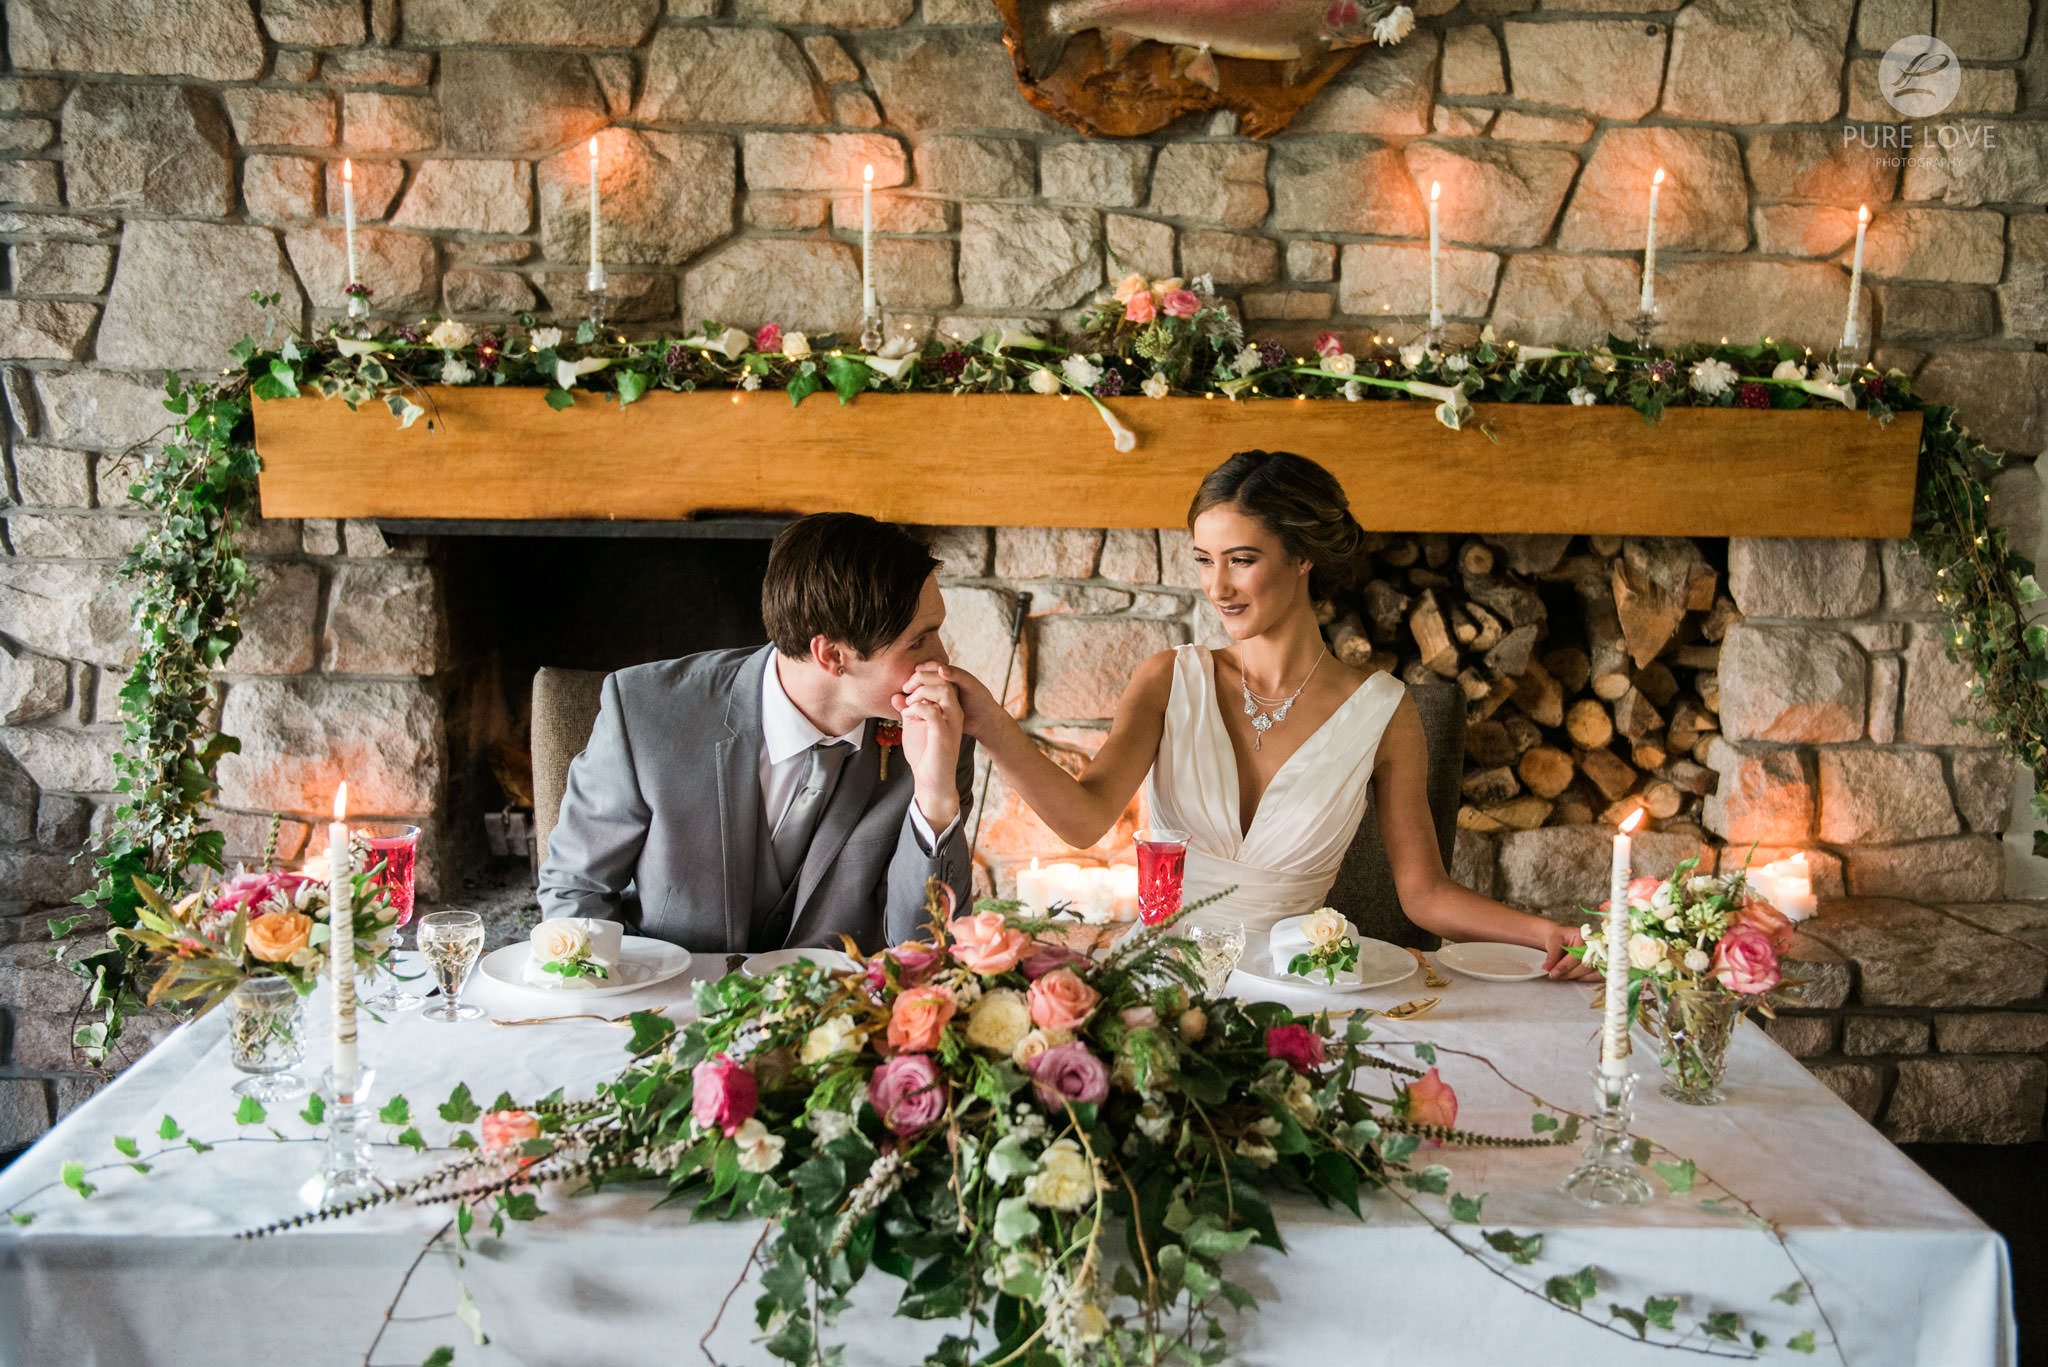 wedding reception by fire place with candles